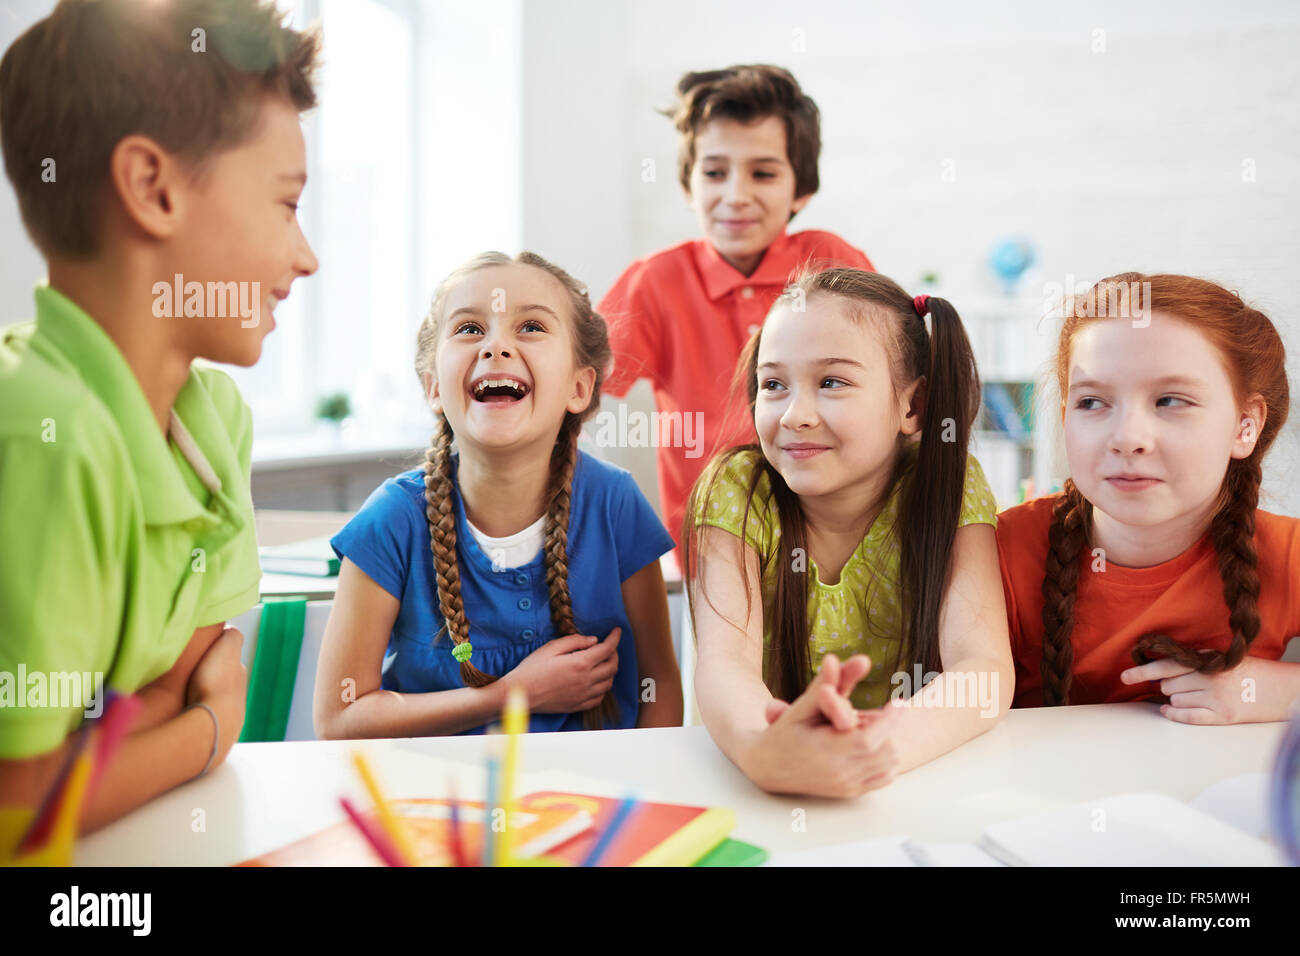 Elementary students talking together at the table - Stock Image